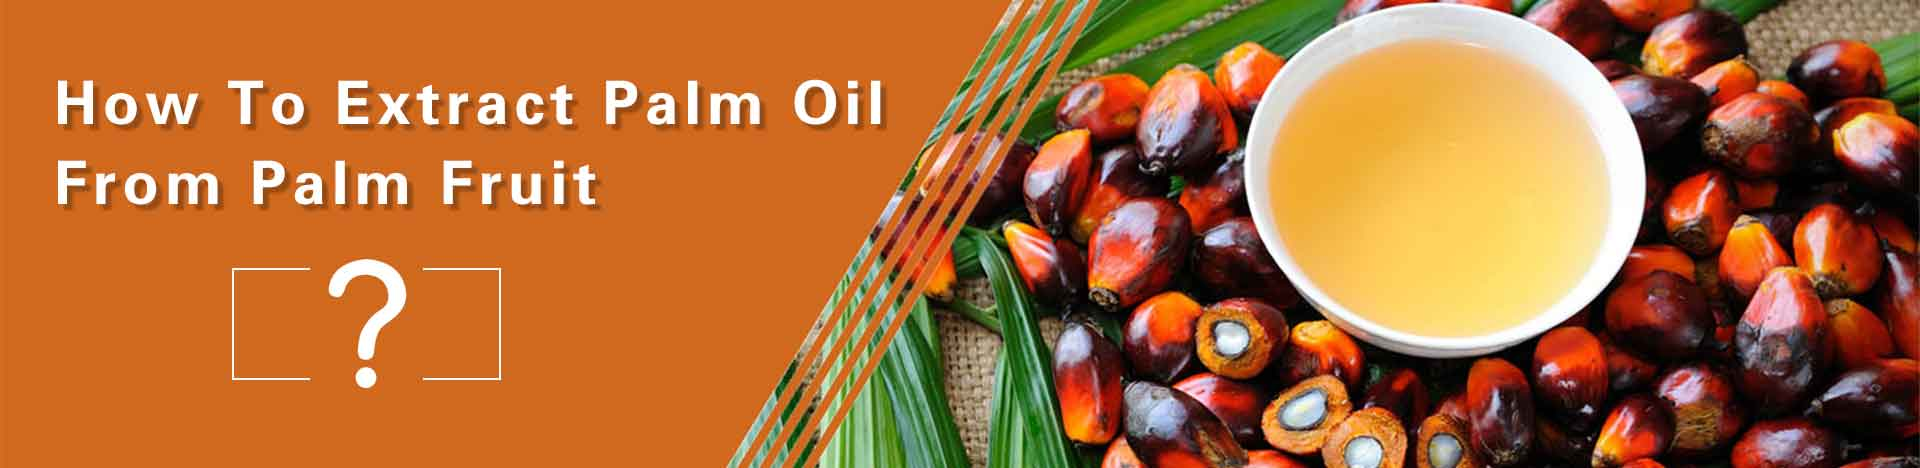 palm oil extraction technology